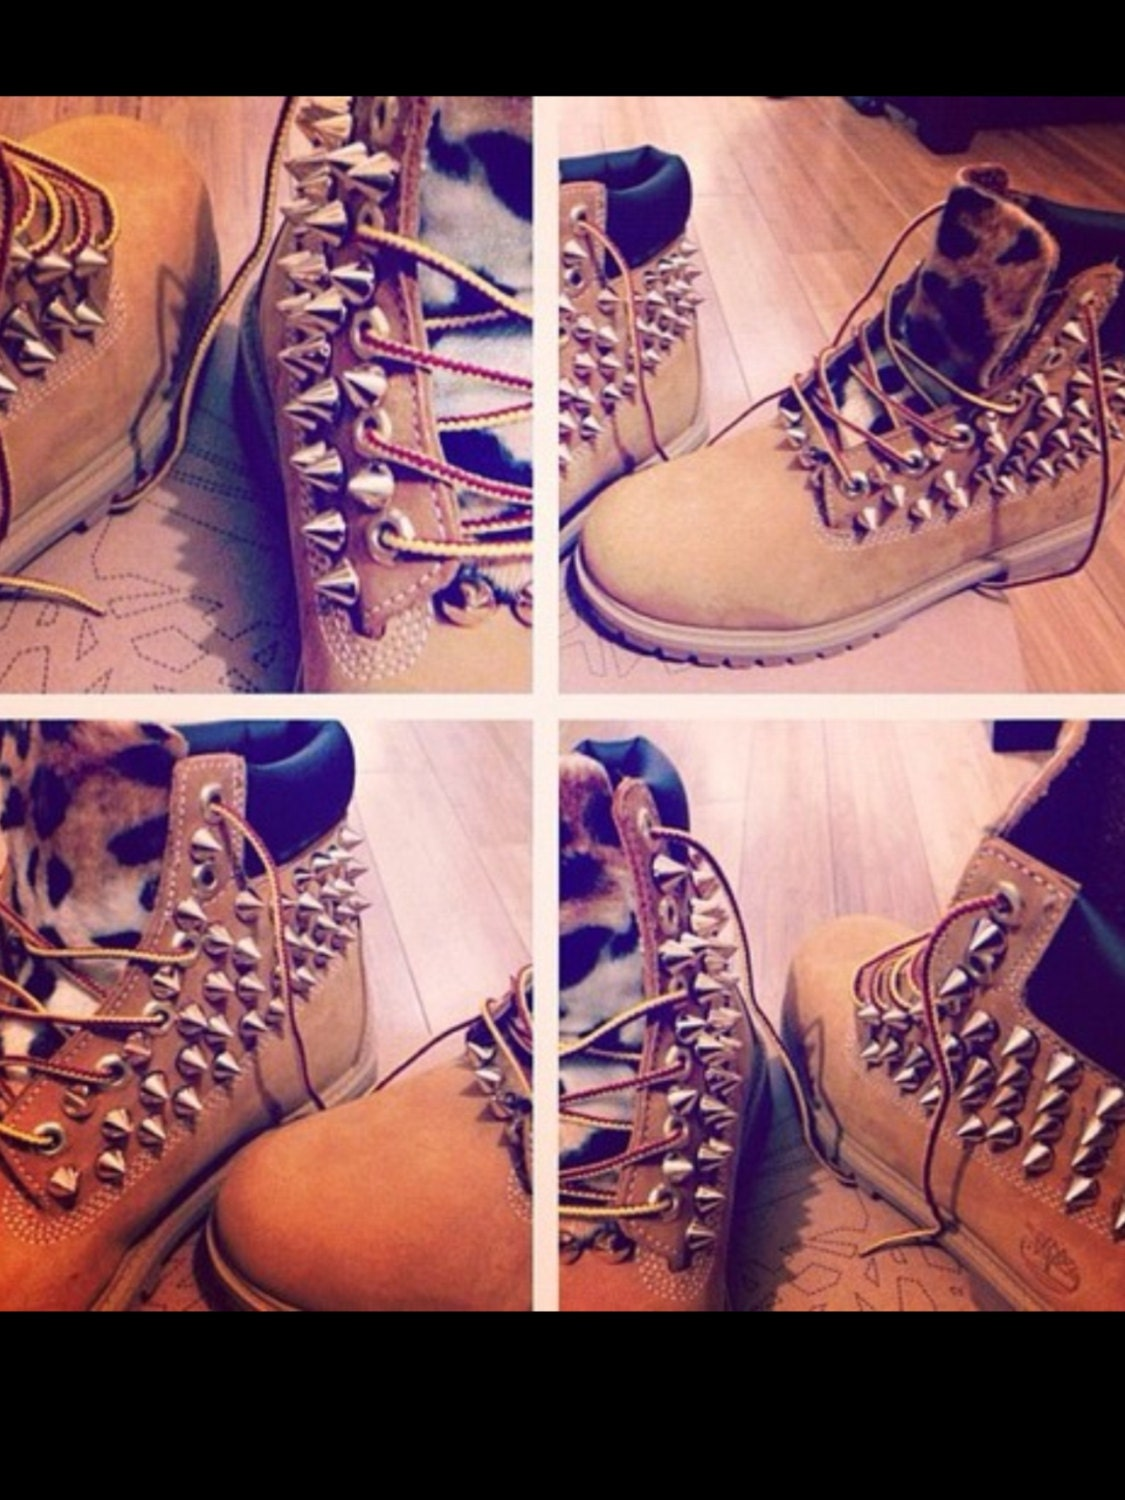 Customized Timberlands With Spikes Custom Made Spiked Timberland